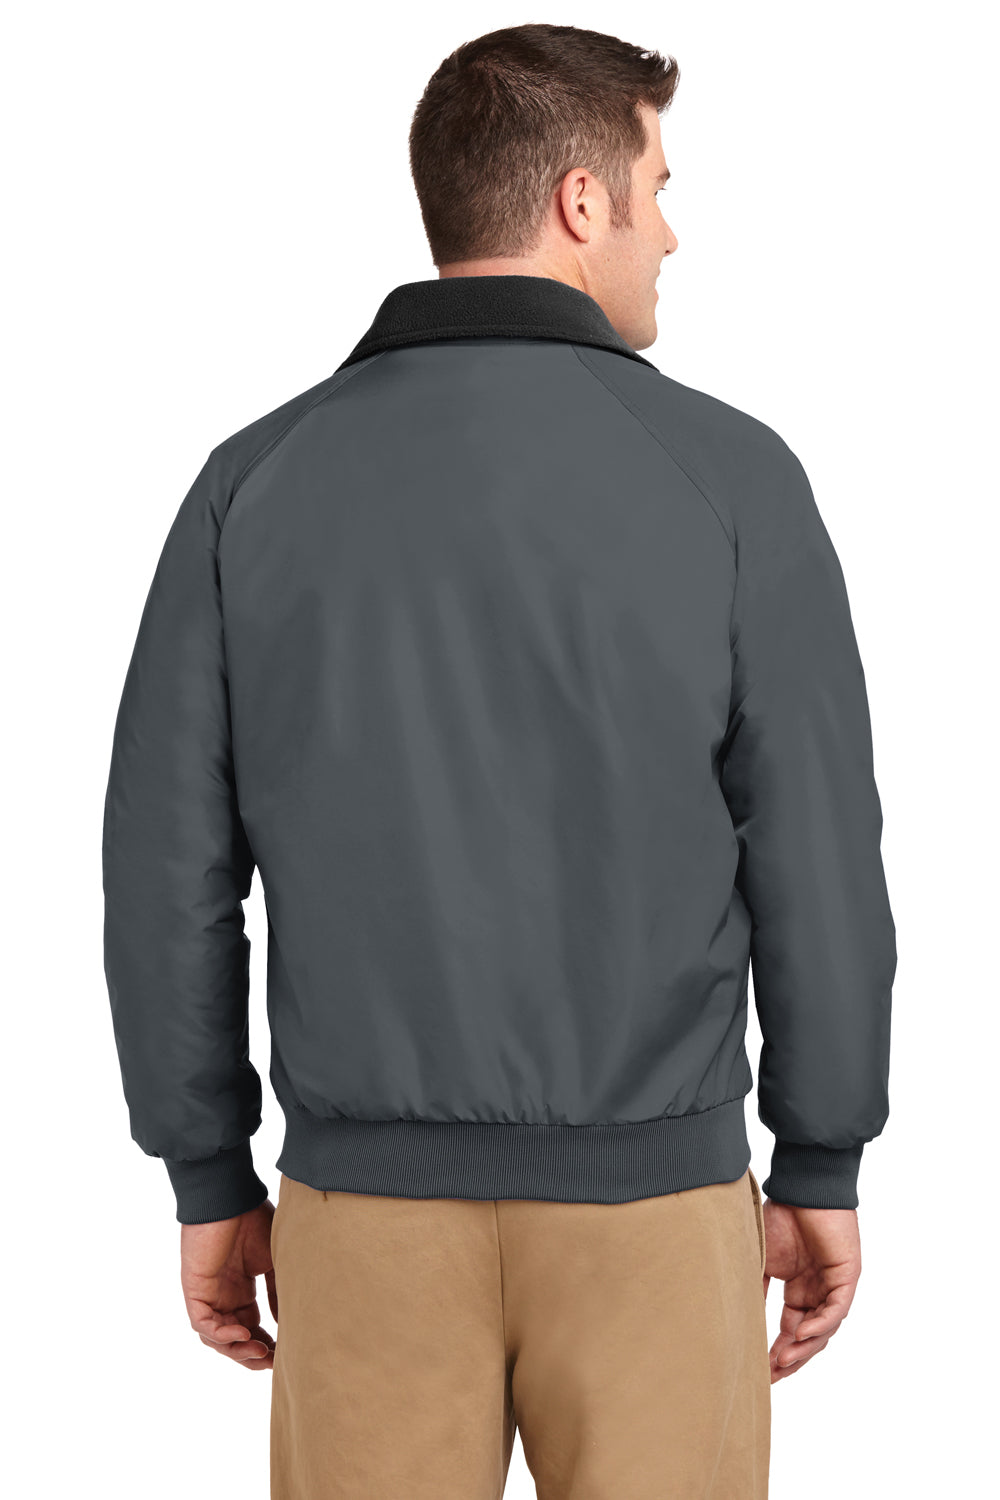 Port Authority J754 Mens Challenger Wind & Water Resistant Full Zip Jacket Steel Grey Back